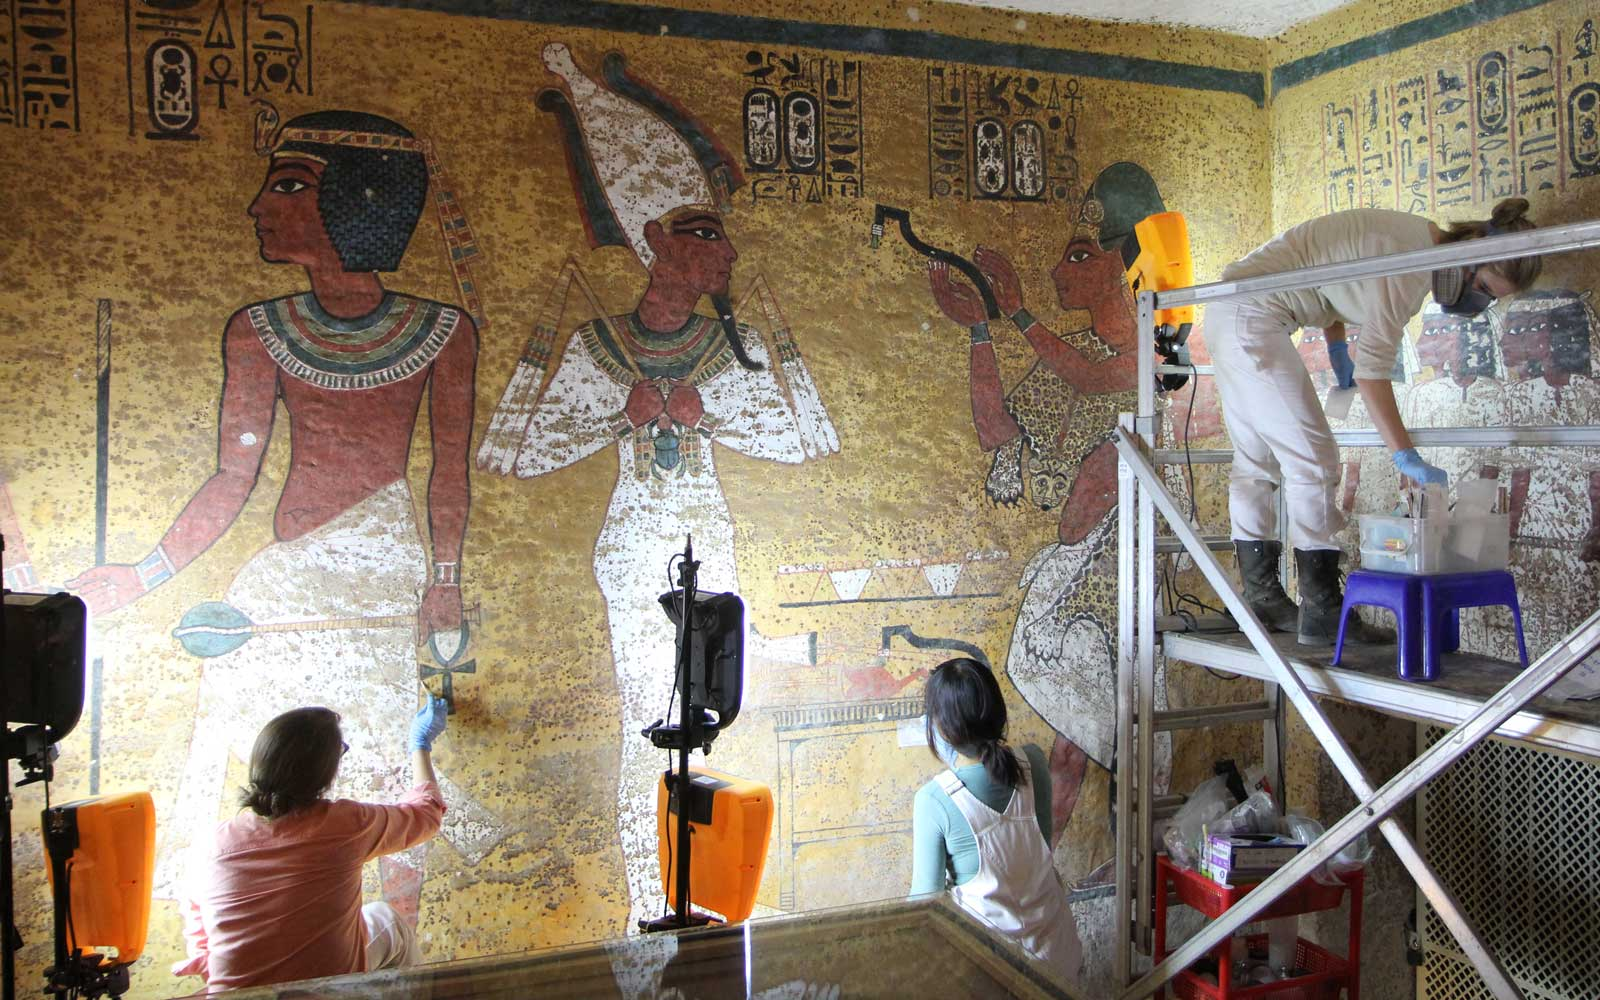 King Tut's Tomb Is Reopening to Visitors After 9 Years of Restoration Work — Take a Look Inside